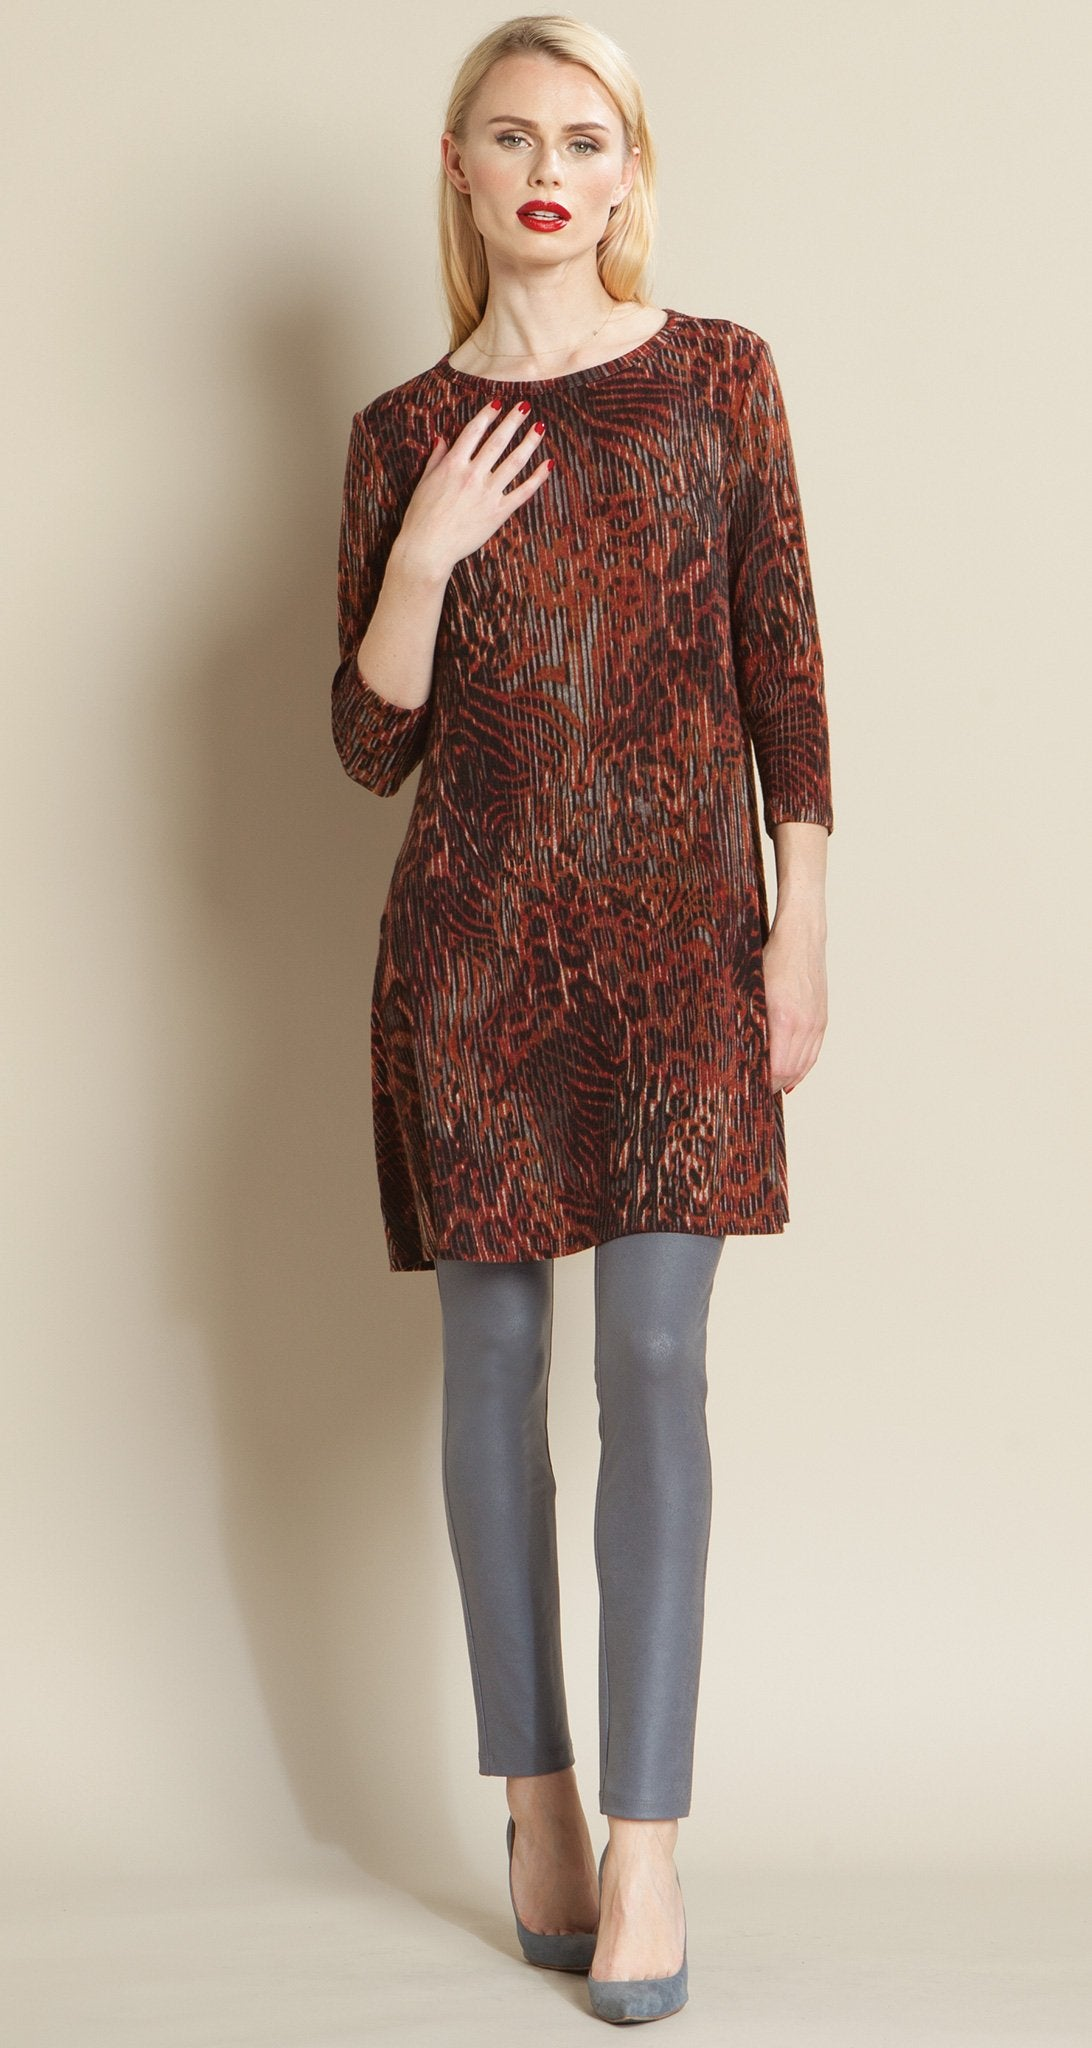 Animal Print Sweater Tunic Dress - Brick - Final Sale!